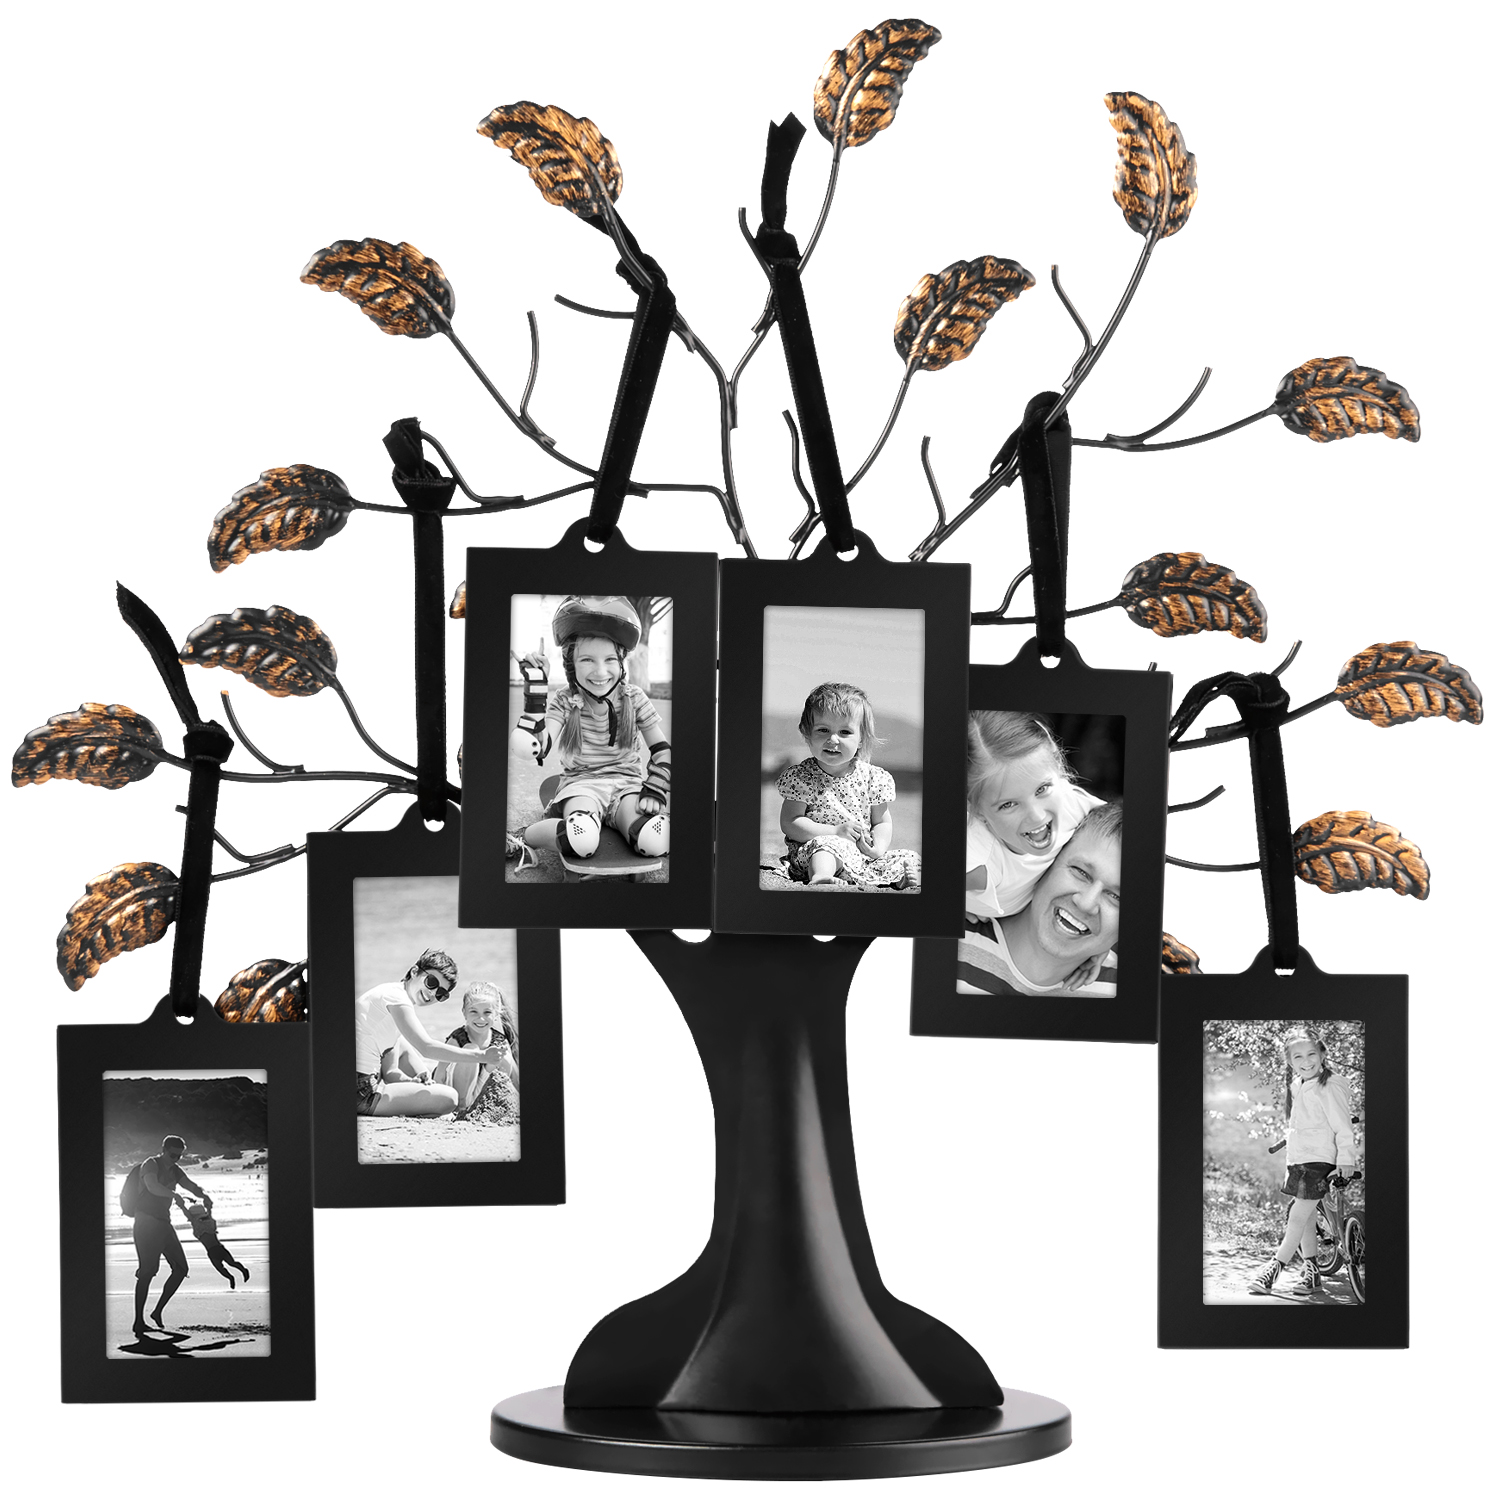 Bronze Family Tree Frame - 6 Hanging Picture Frames Sized 2x3 Inches